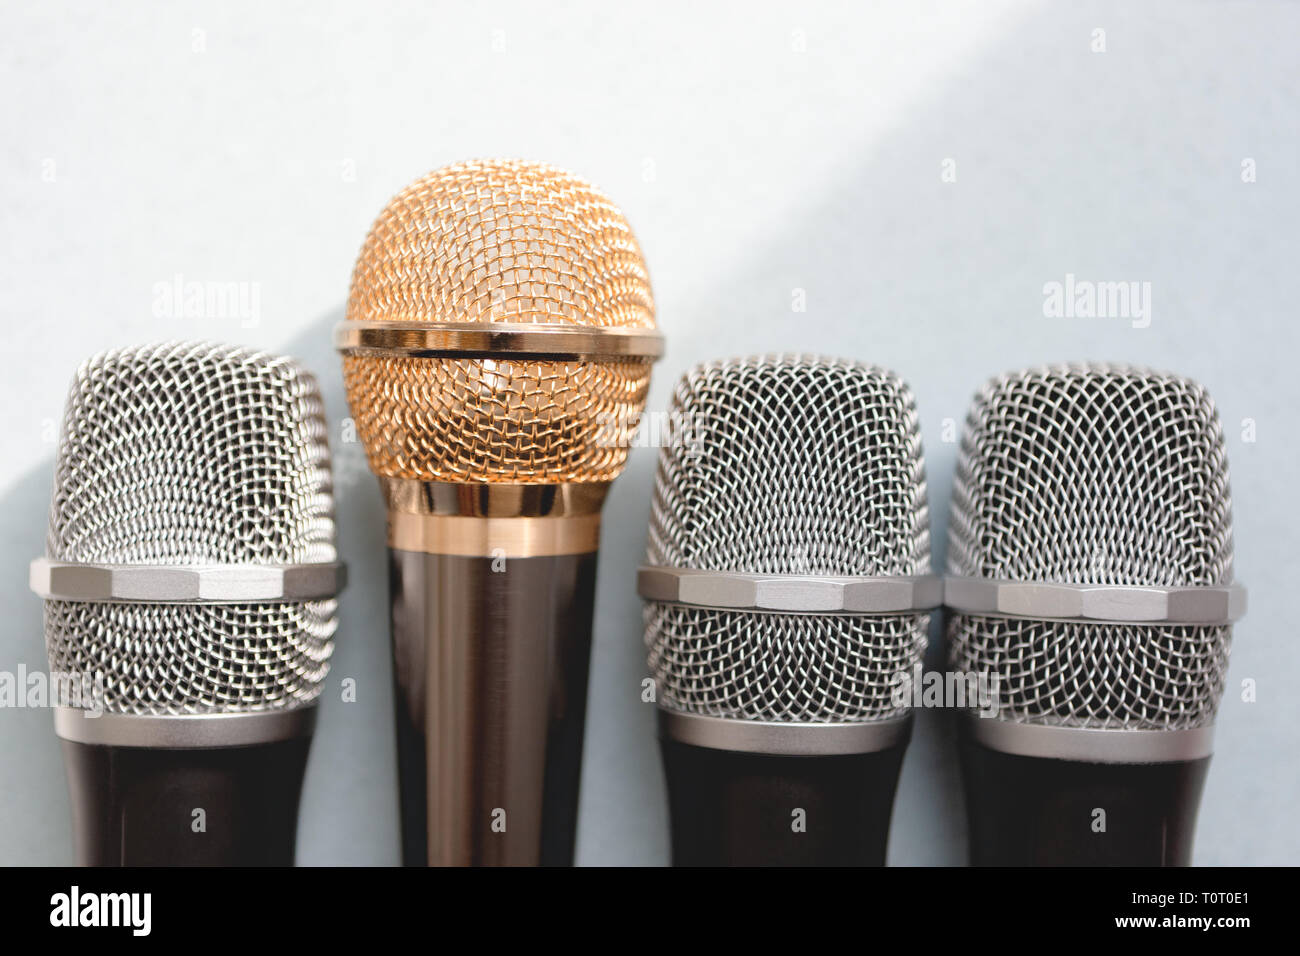 leadership concept. group of microphones with golden one. freedom to speak up concept. - Stock Image